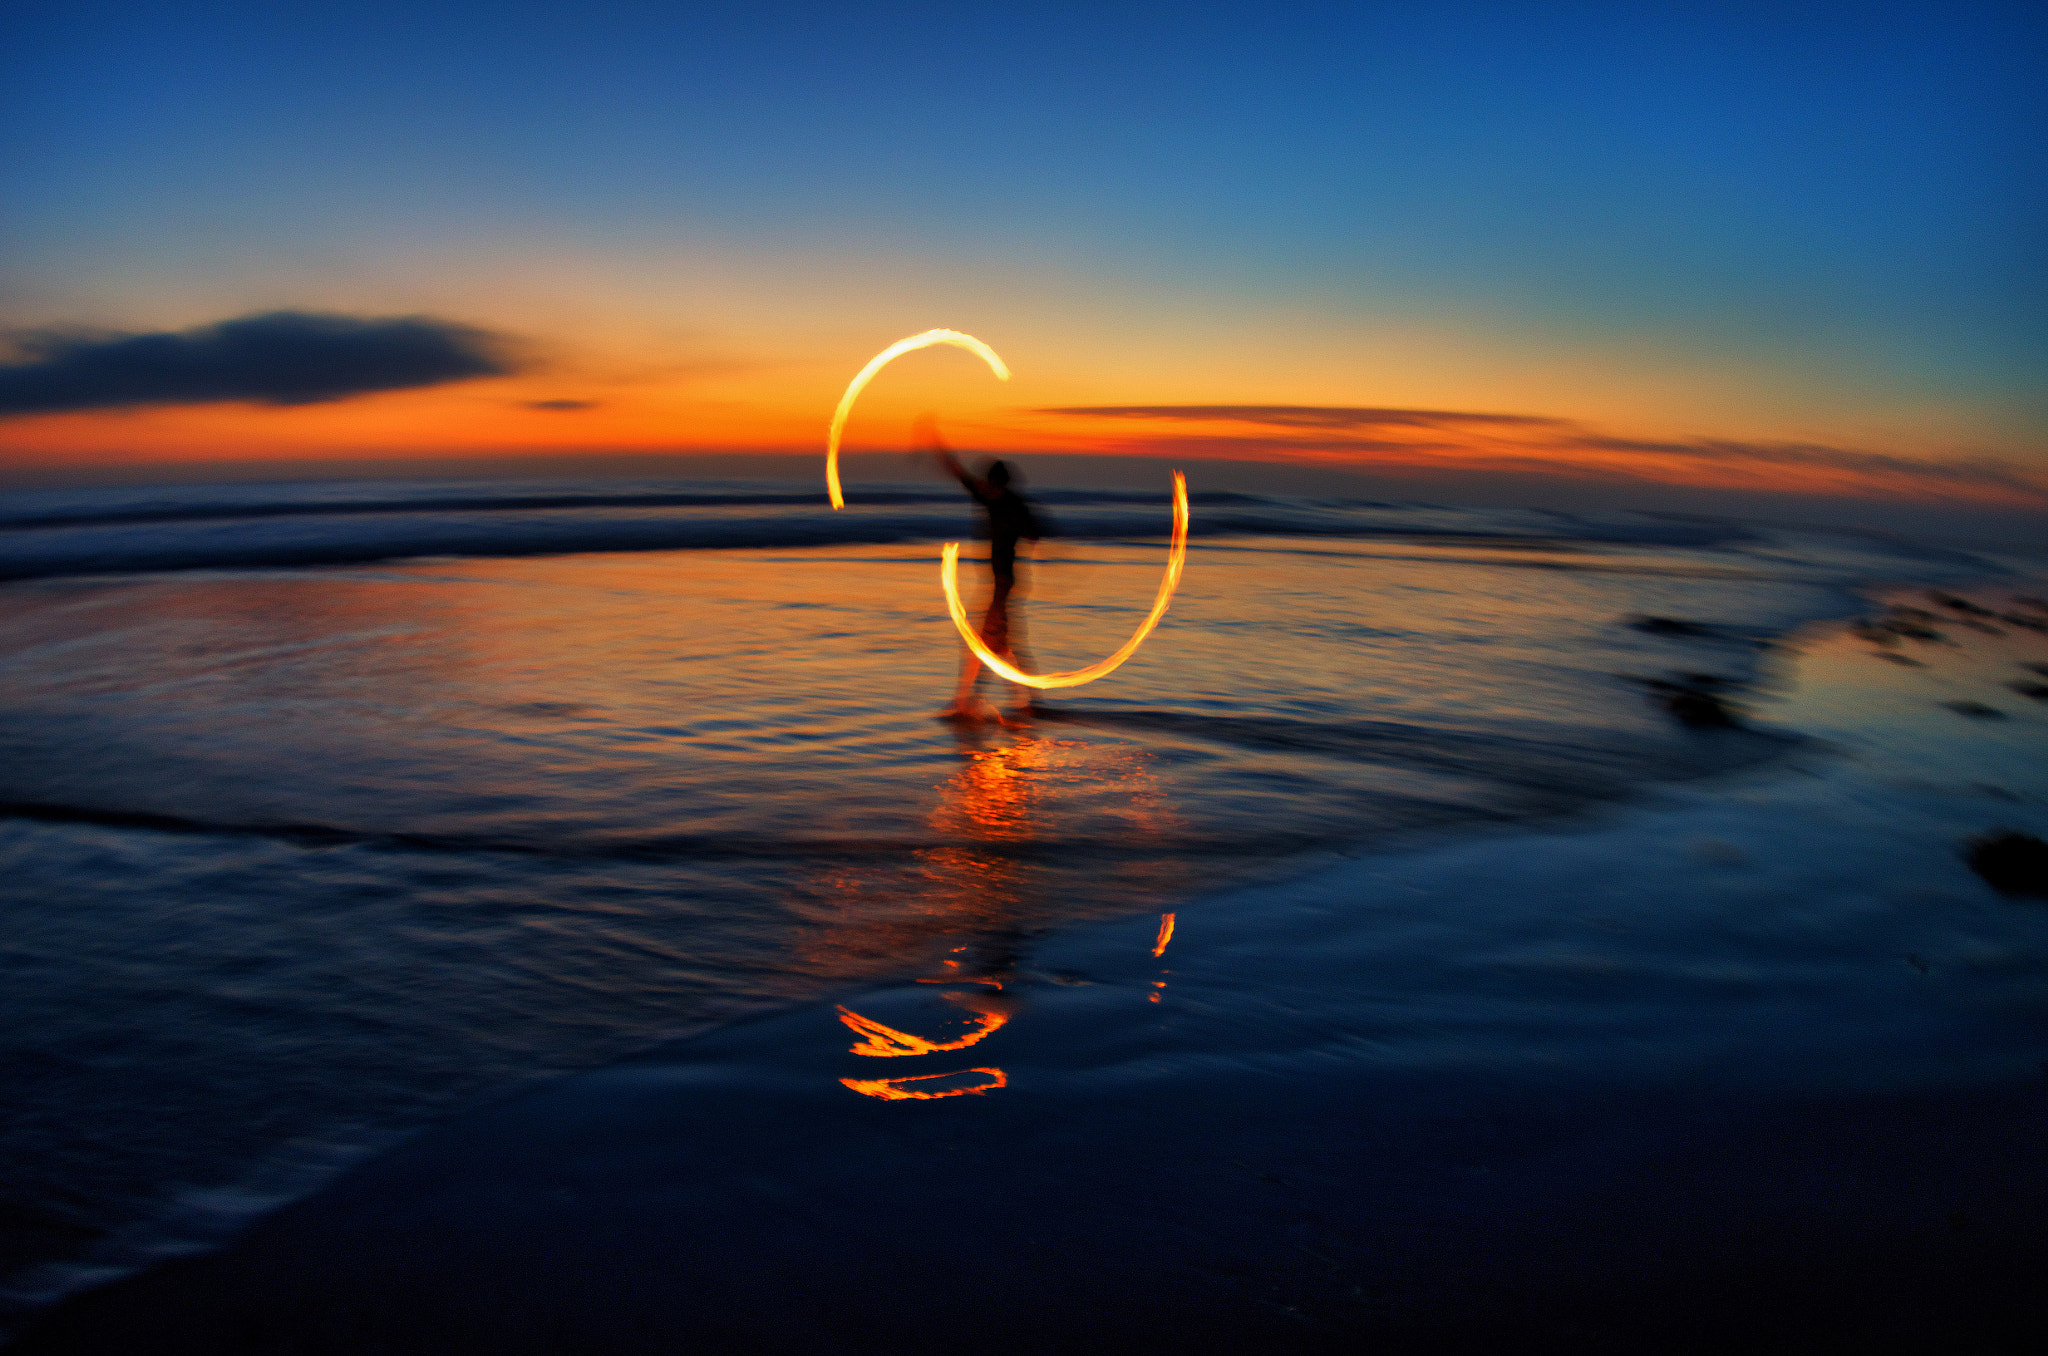 Photograph Fire Poi on the Beach In Oceanside. - September 17, 2012 by Rich Cruse on 500px